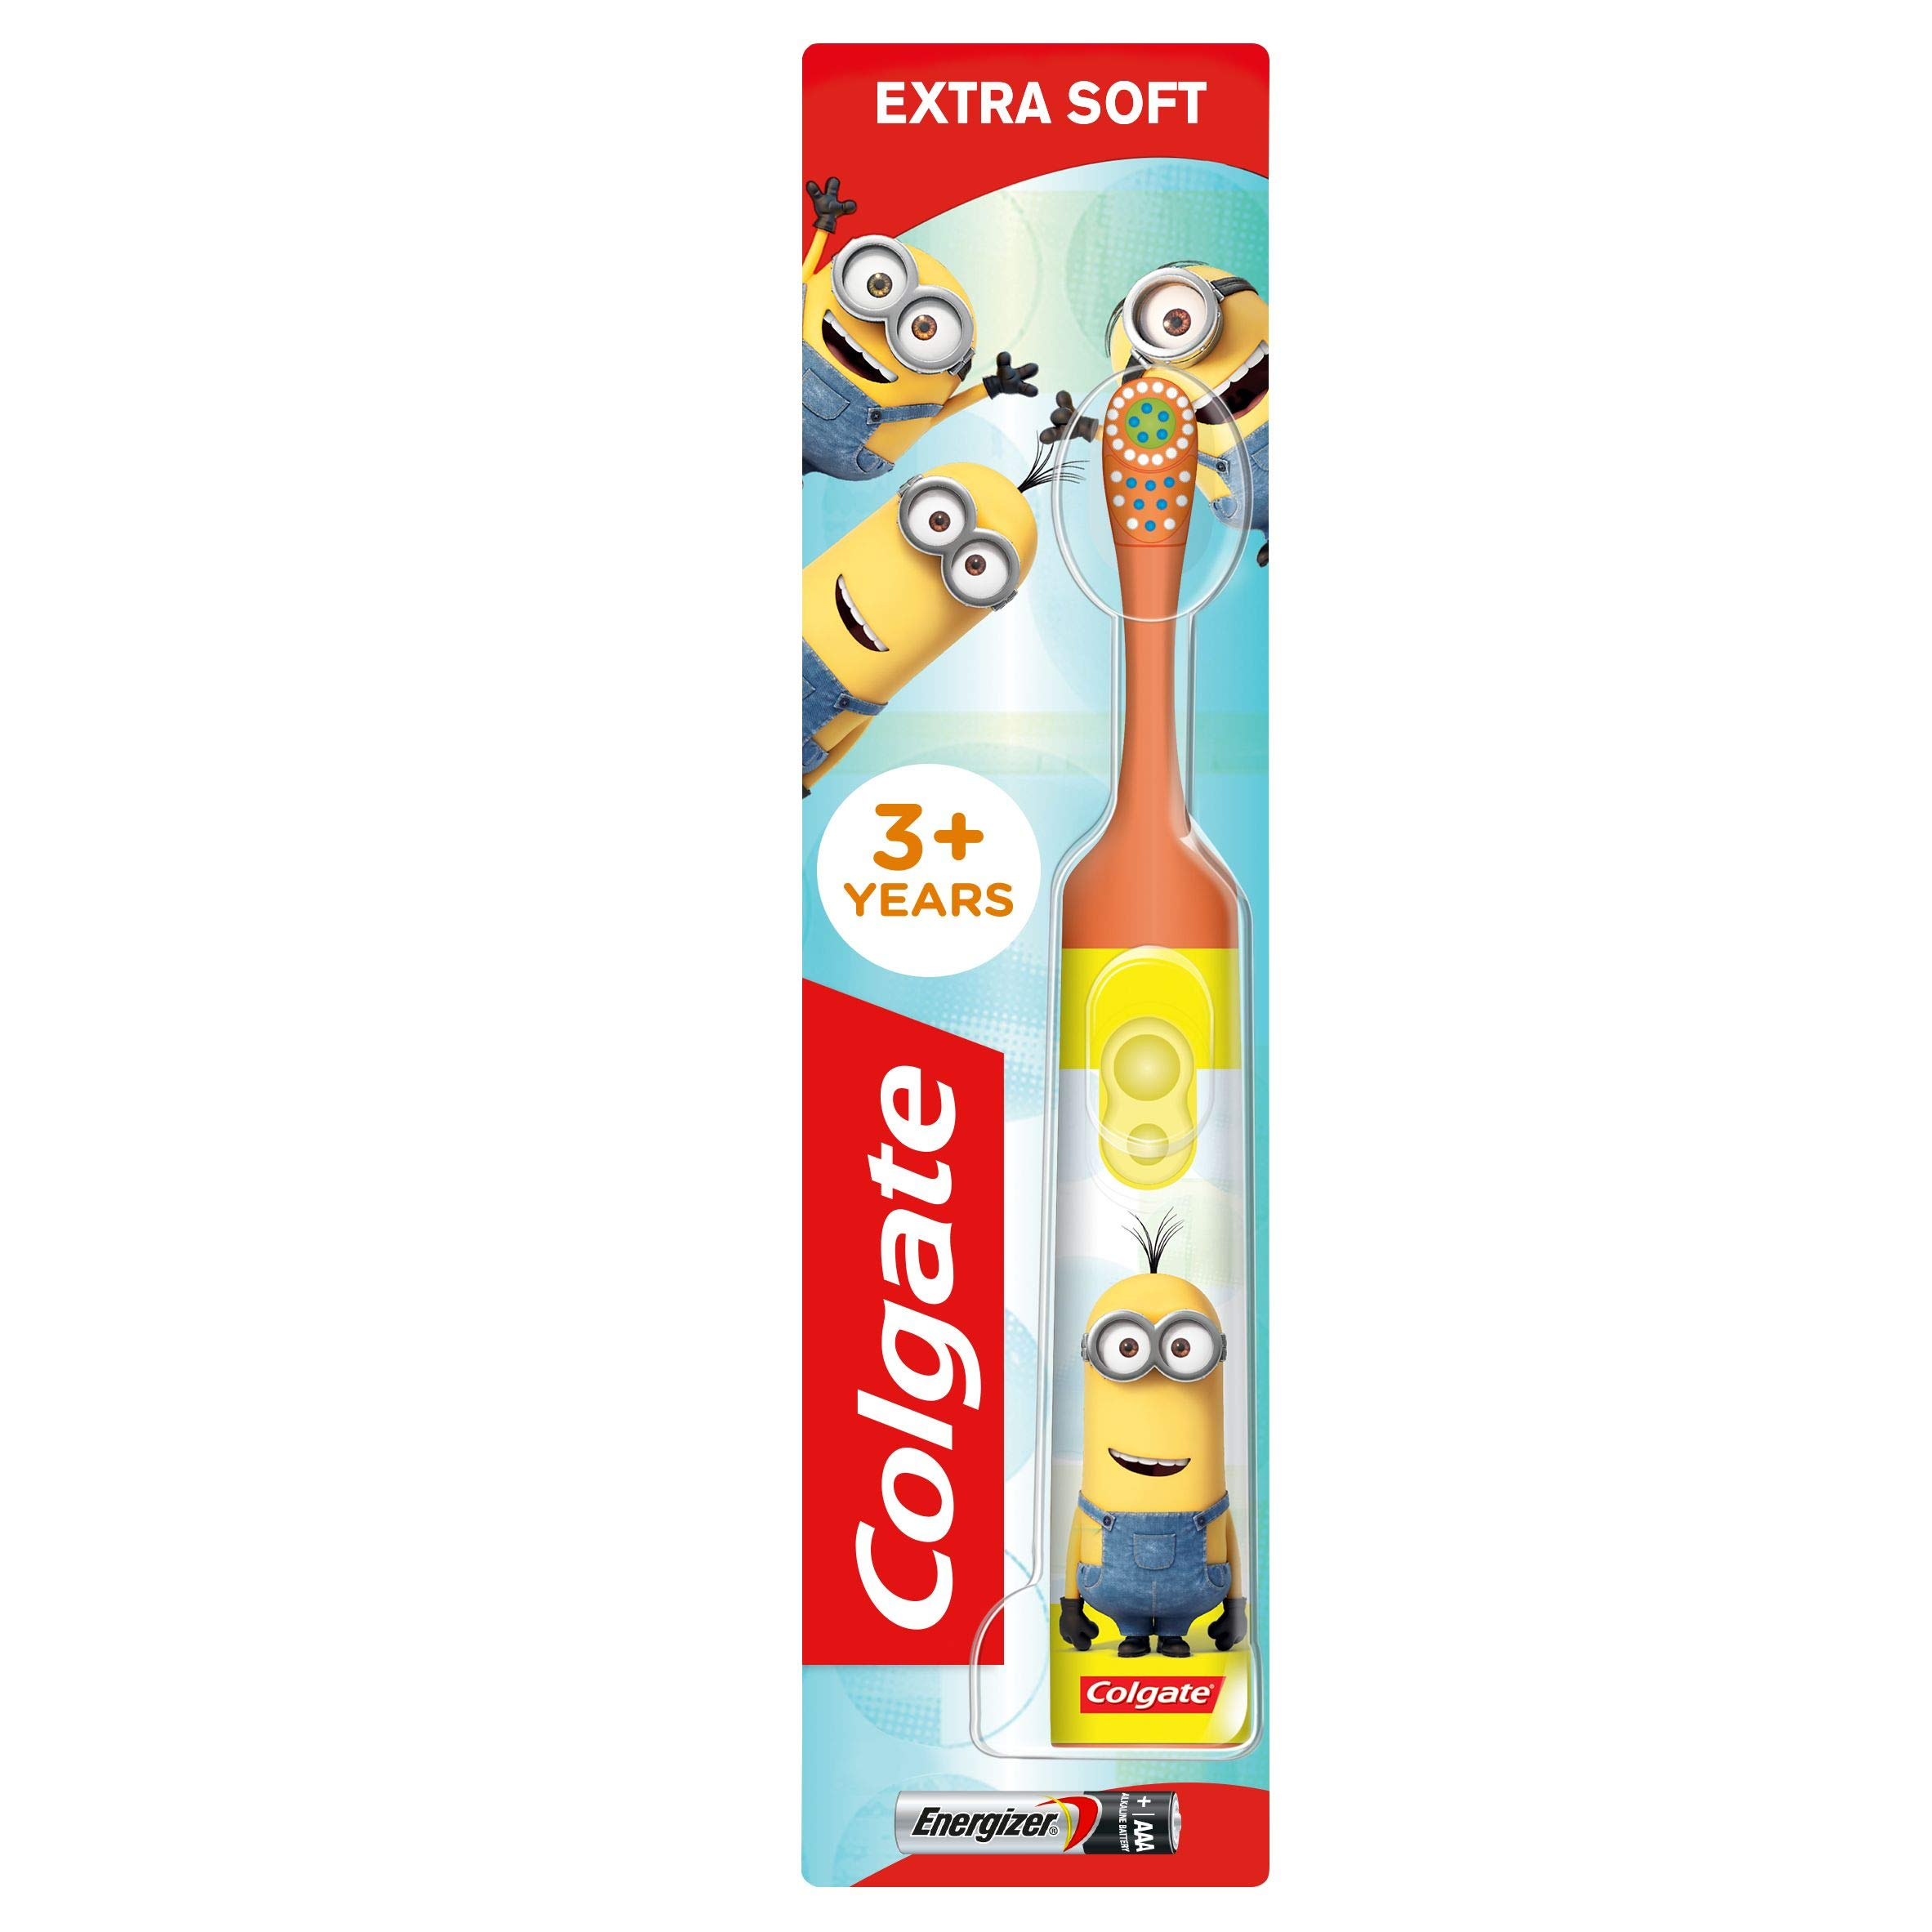 Colgate Kids Minions Extra Soft Battery Toothbrush, 3+ Years